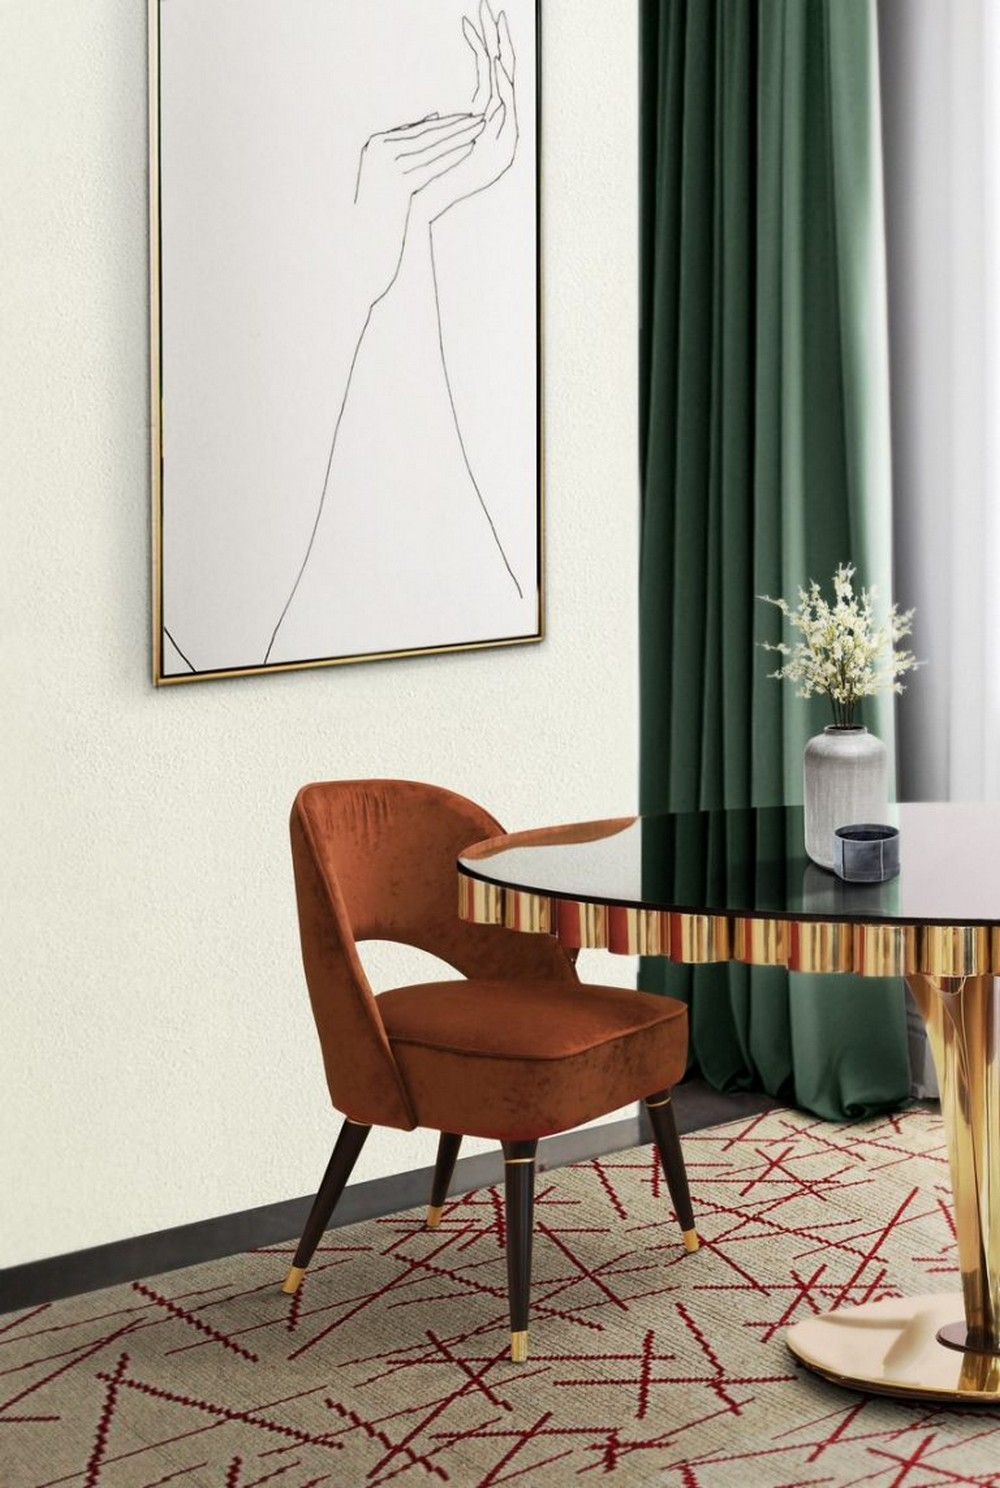 Give Your Dining Room Decor A Geometric New Retro Look For This Summer dining room decor Give Your Dining Room Decor A Geometric New Retro Look For This Summer Give Your Dining Room Decor A Geometric New Retro Look For This Summer